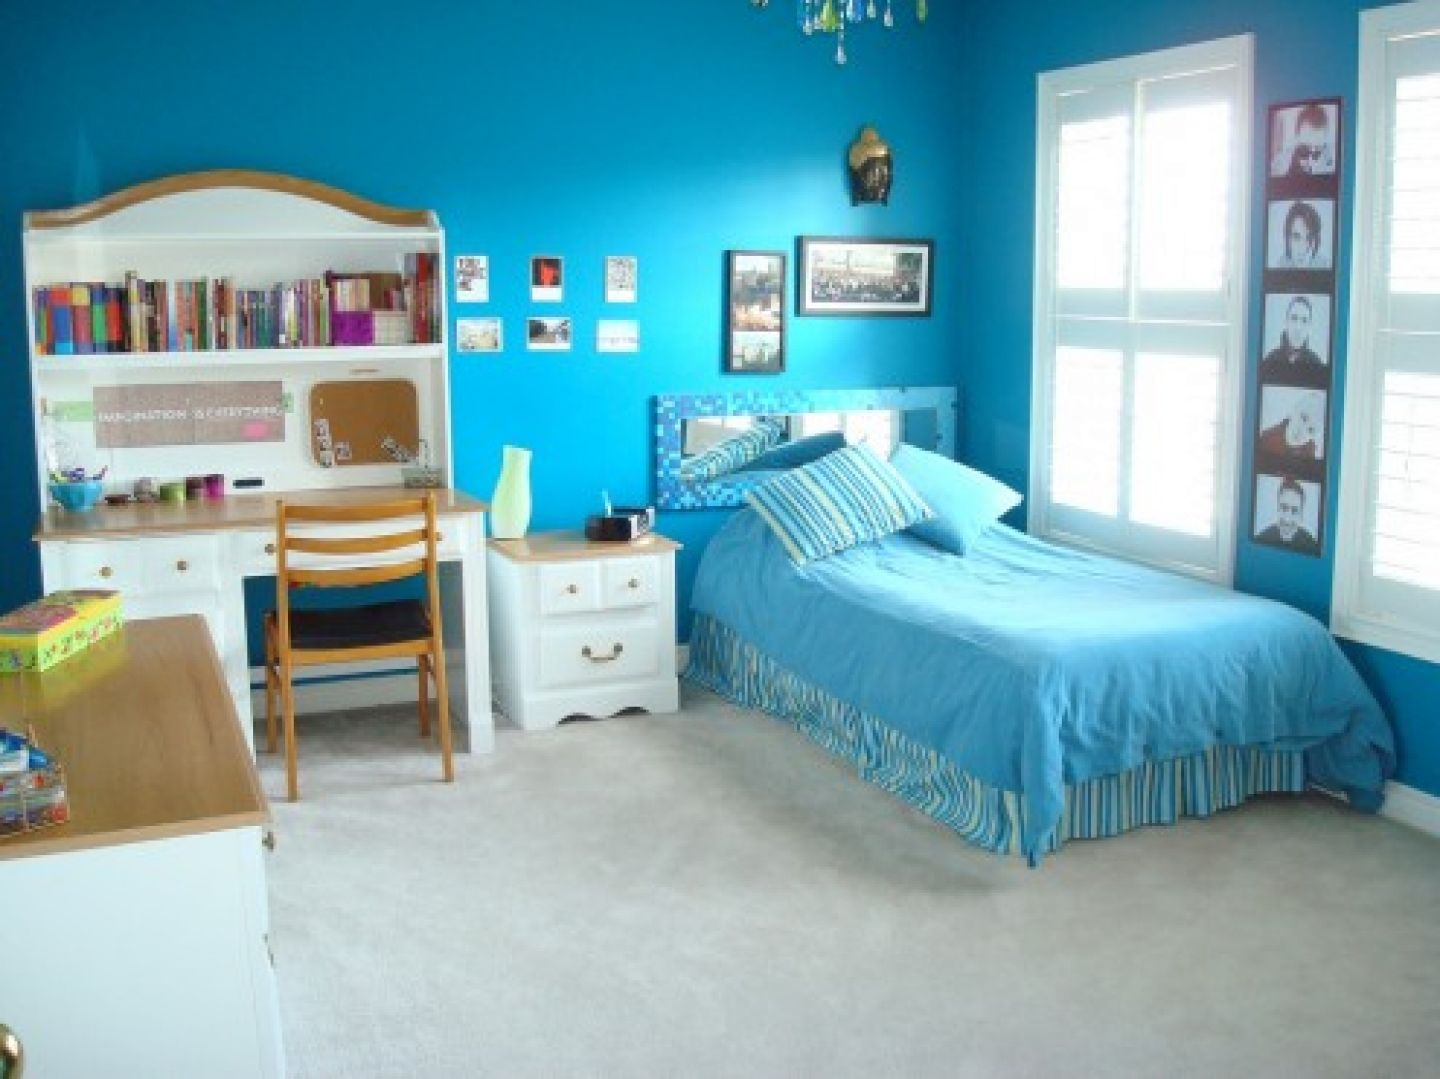 Unique Decorating Teenage Girl Bedroom Ideas For Girls On A